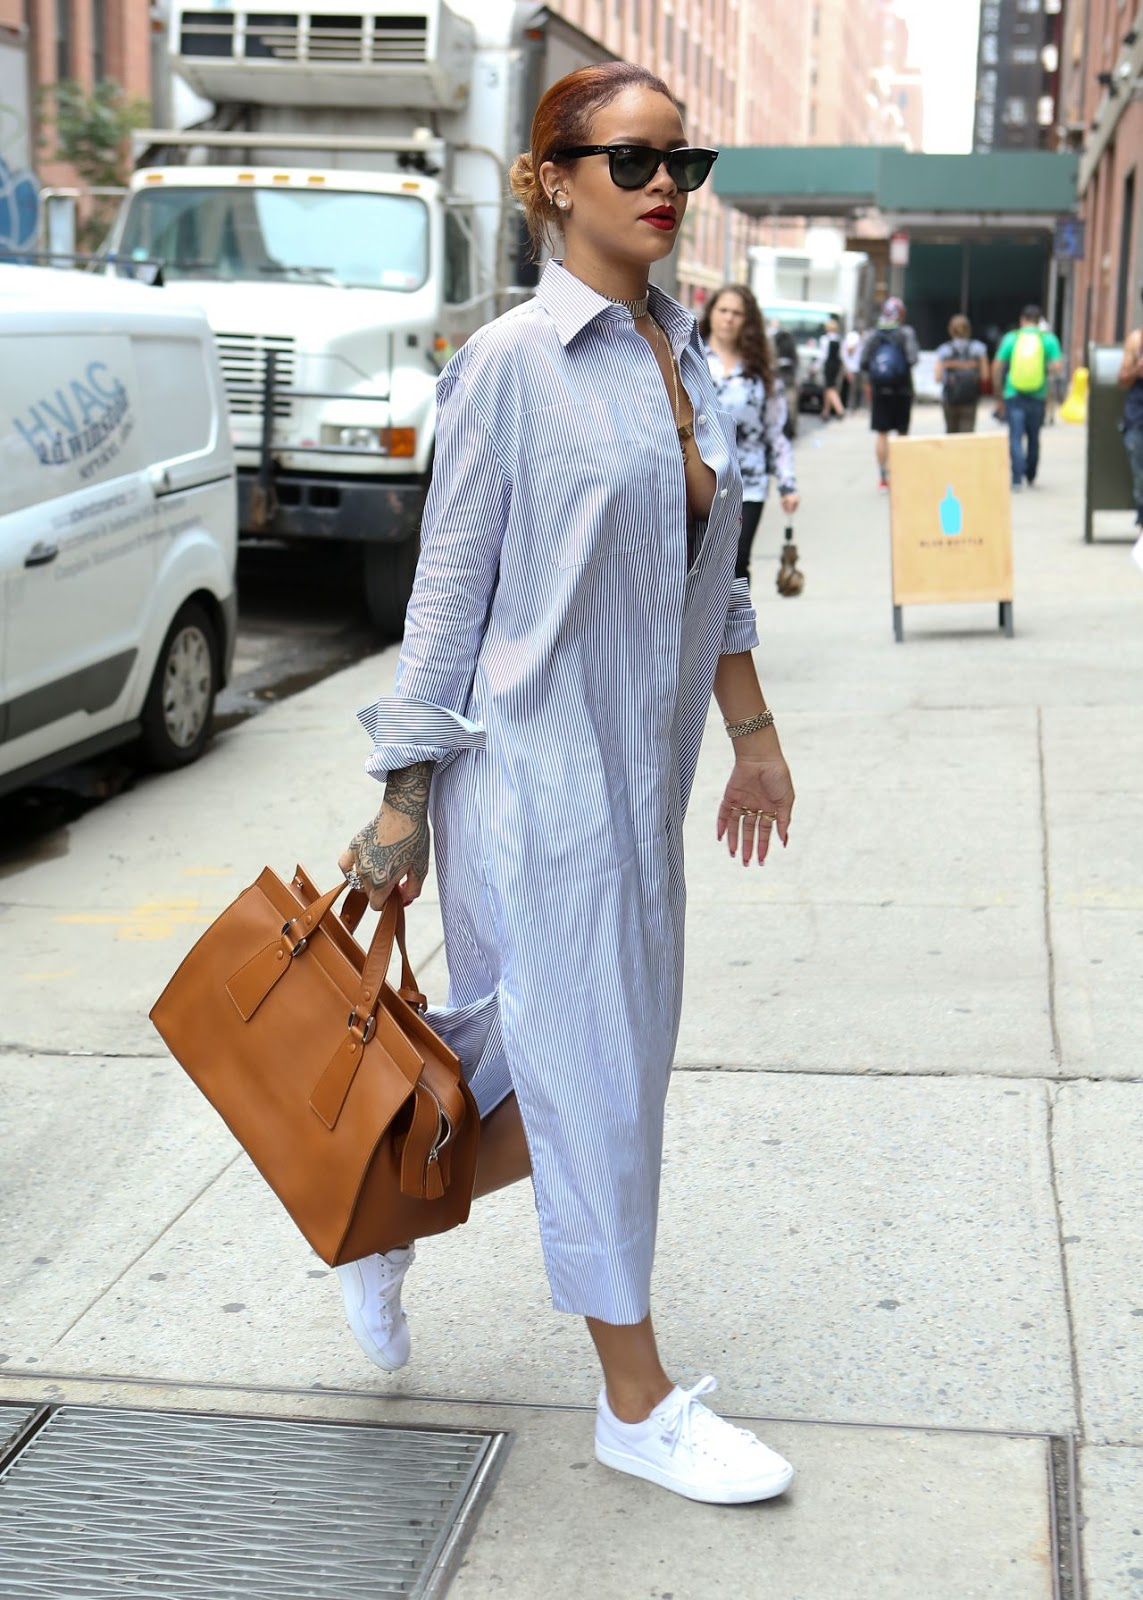 Rihanna goes braless in a shirt dress in New York City